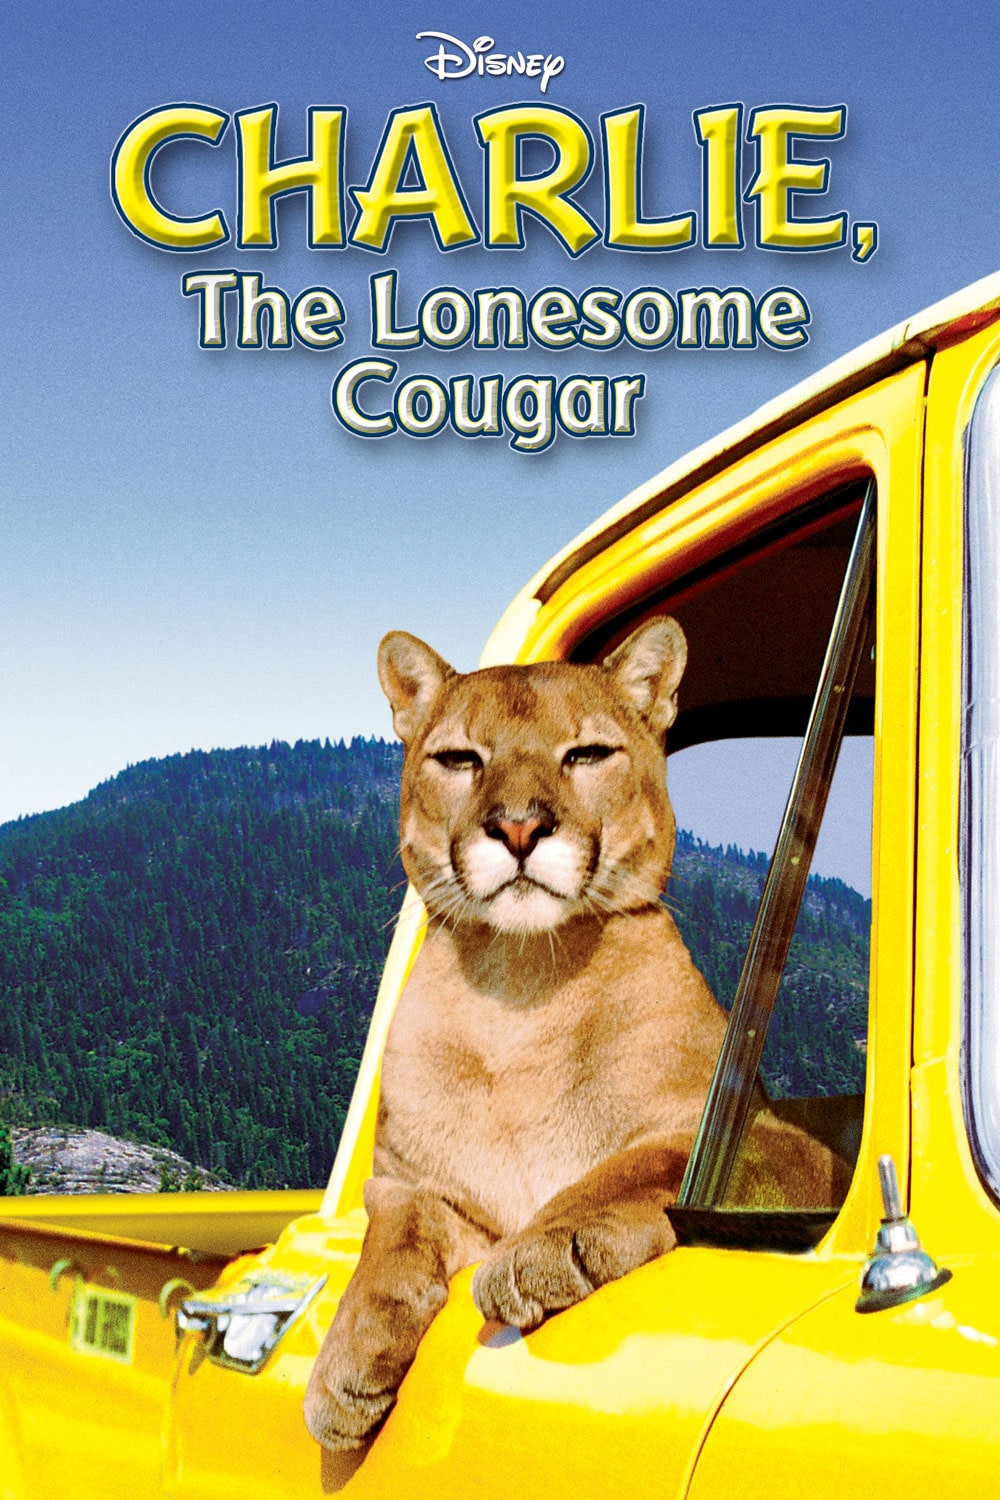 Charlie, the Lonesome Cougar